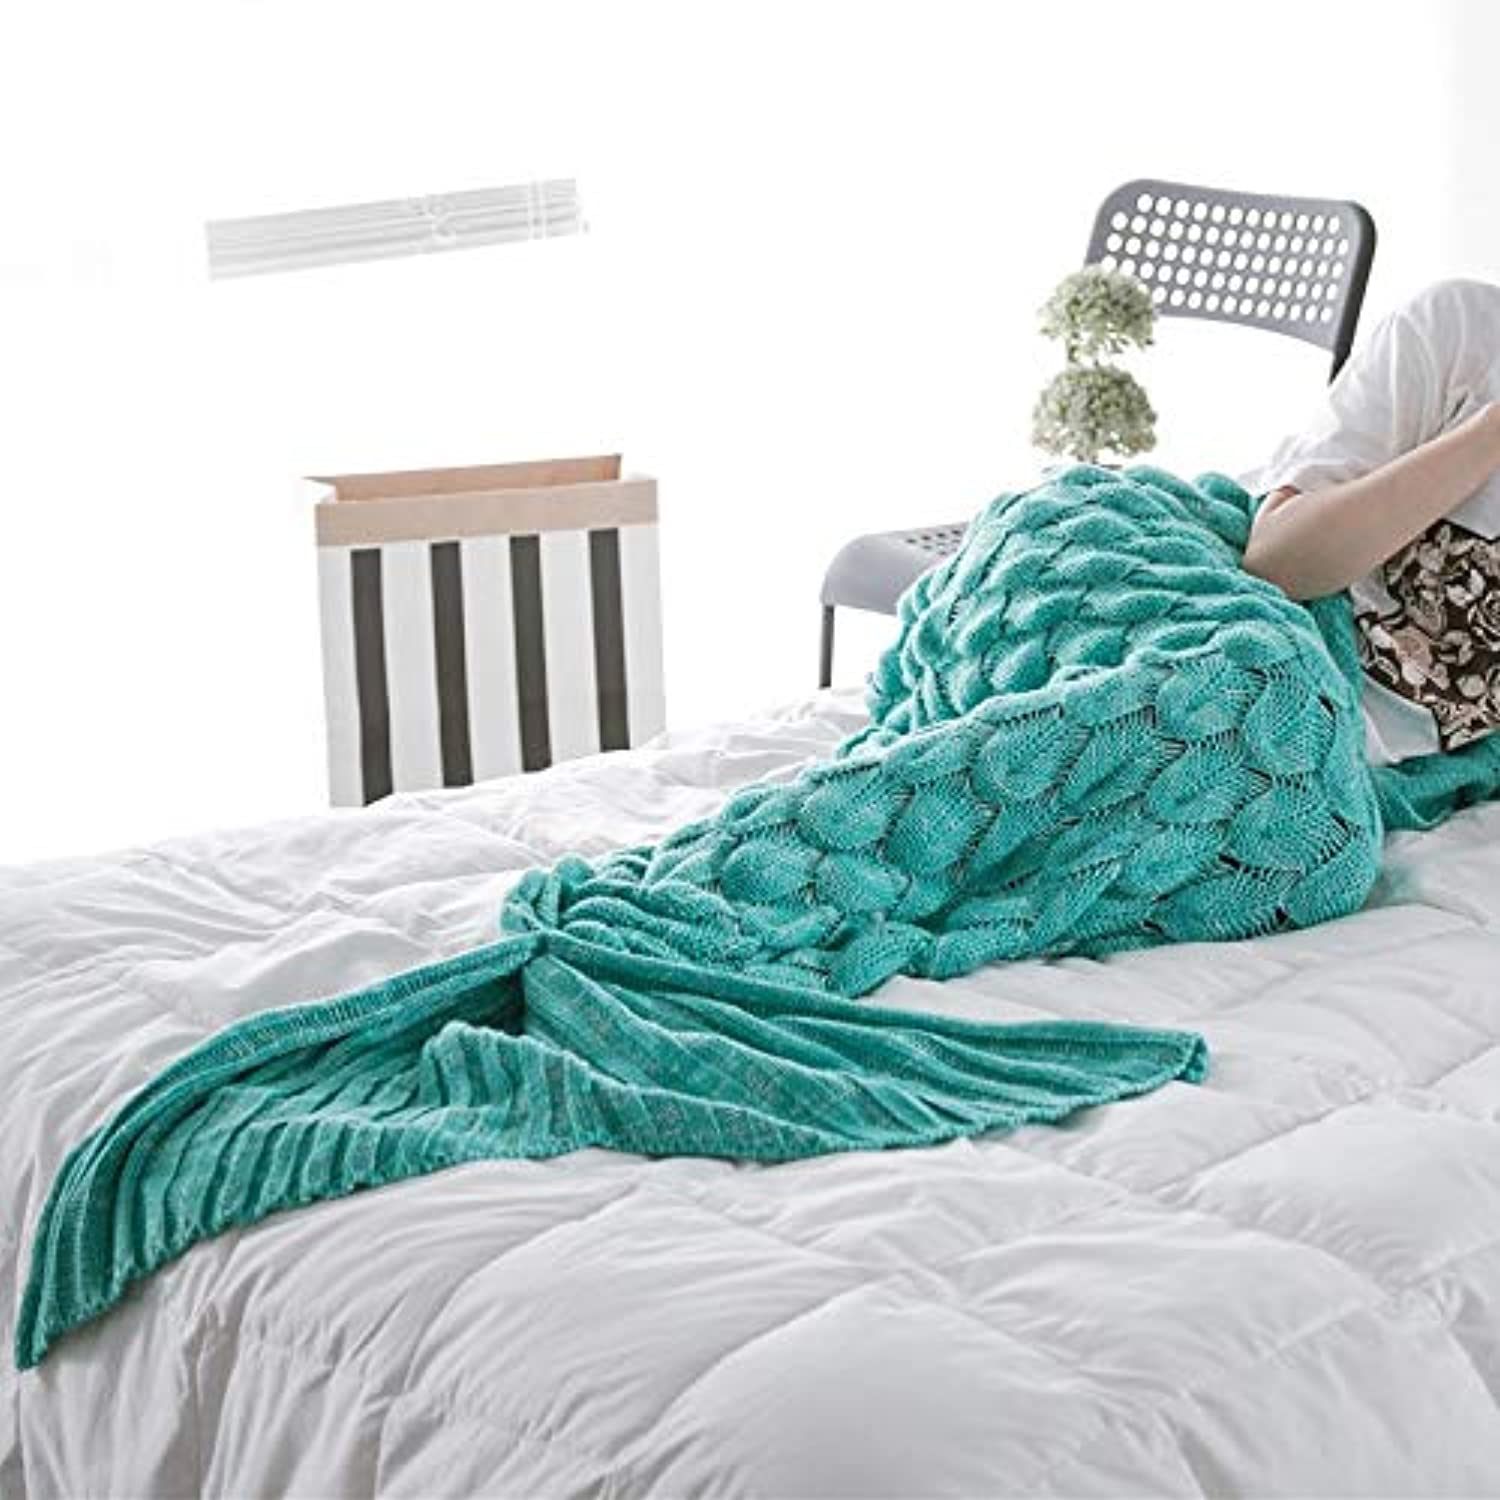 Cotton Palace Mermaid Blanket Plaid Knitted Plaids Bed Cover Mermaid's Tail Throw Knit Crochet Sleeping Bag